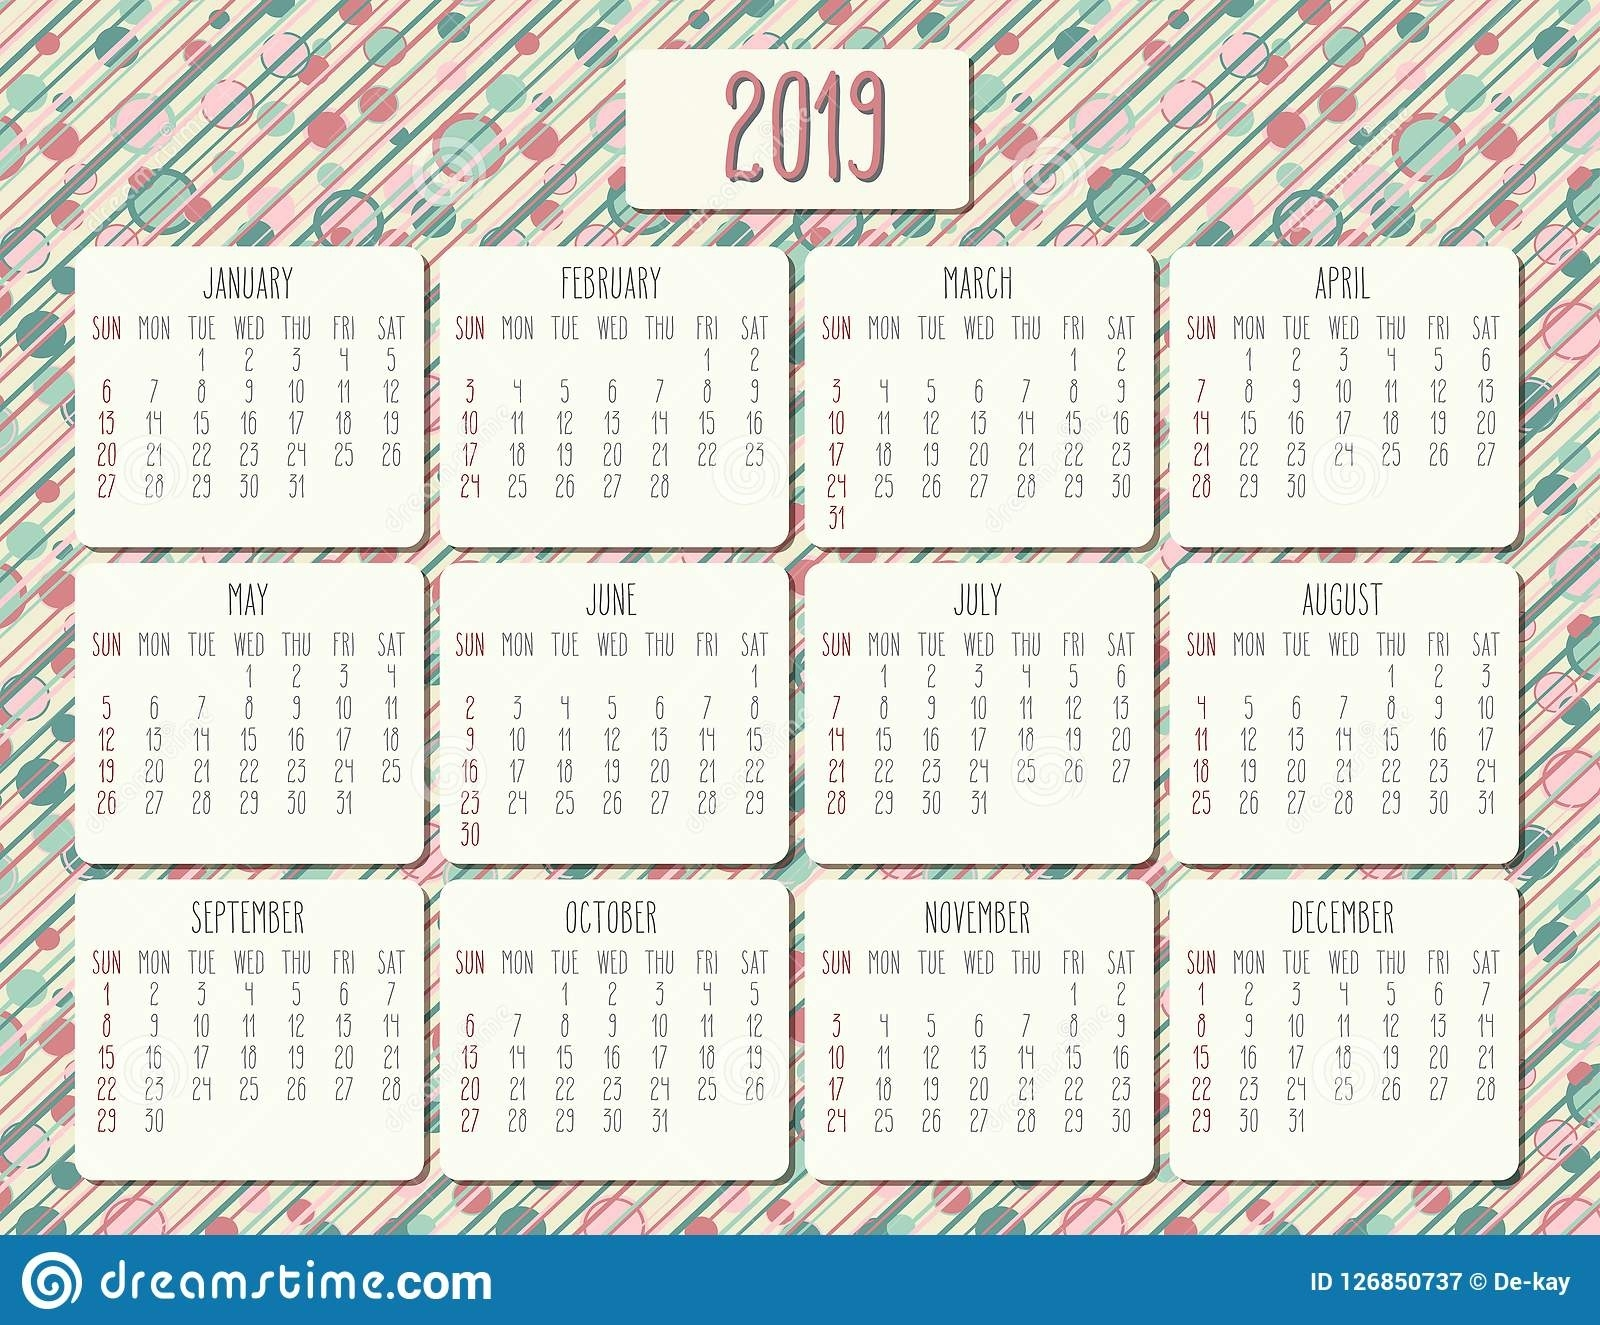 Year 2019 Monthly Calendar Stock Vector. Illustration Of Schedule 5 Year Monthly Calendar